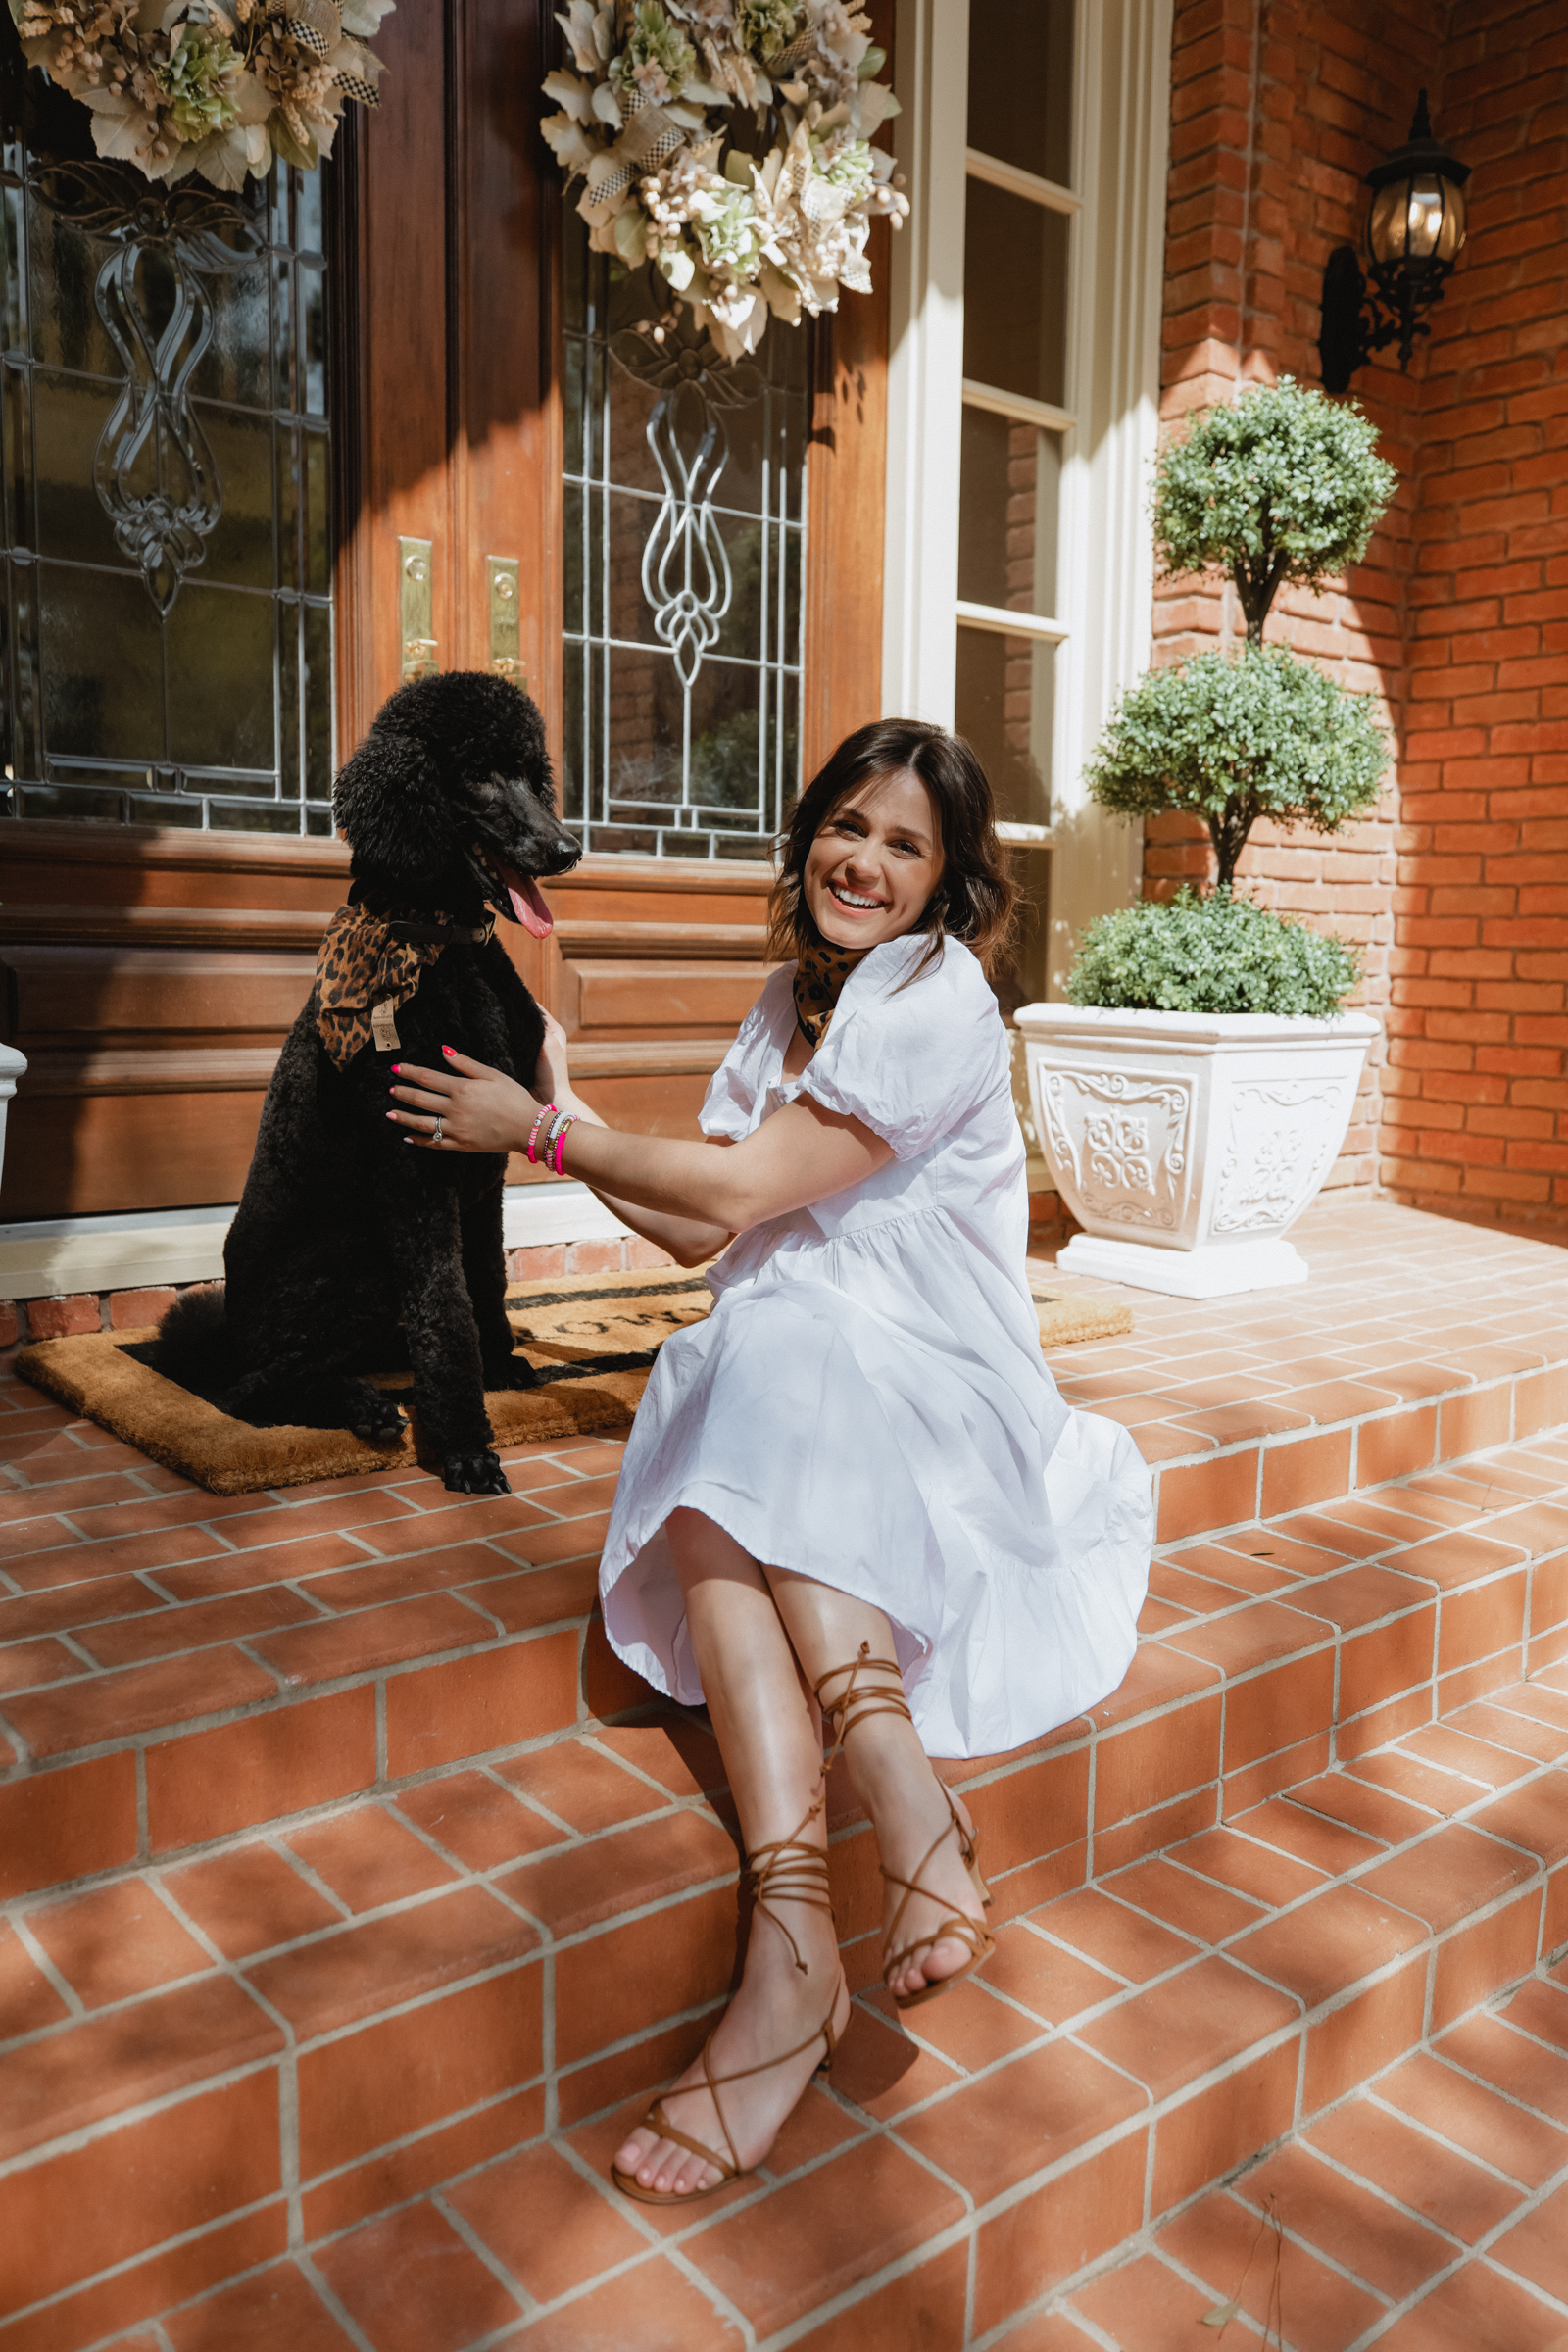 Elly Brown shares her front porch decor for Spring with her standard poodle